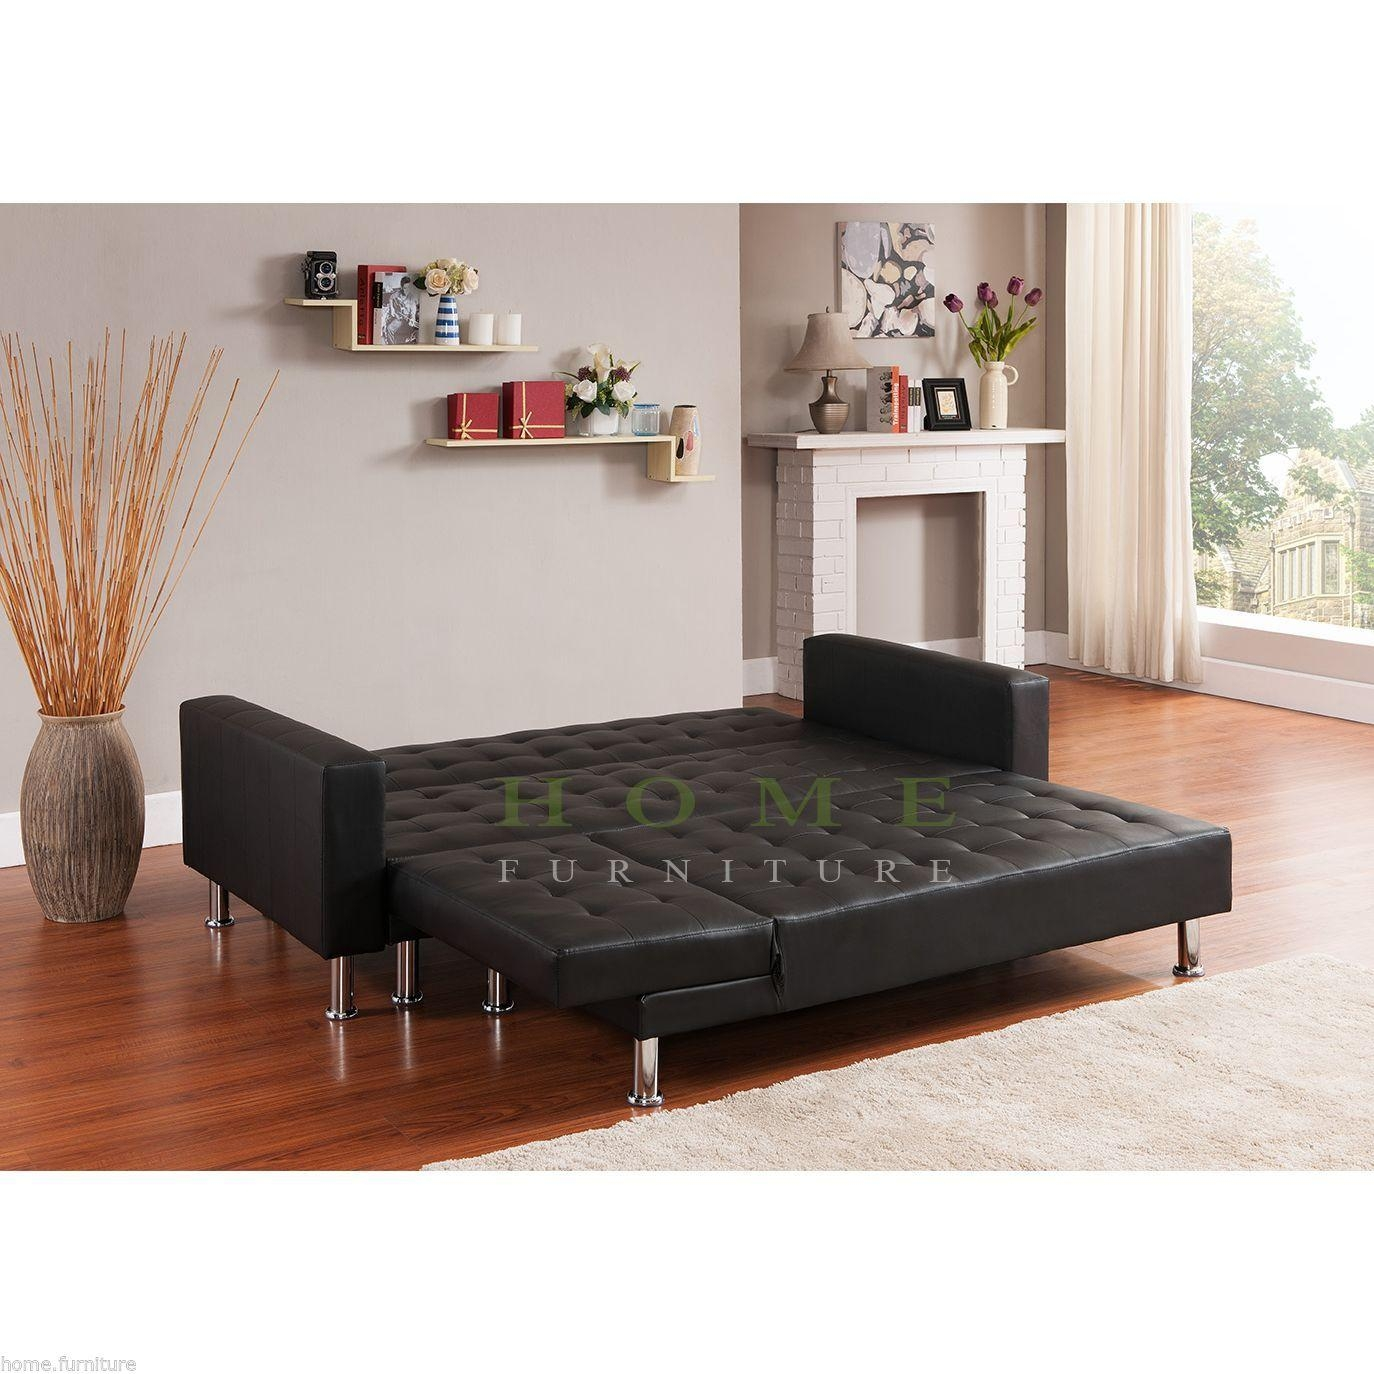 Interesting Mies Van Der Rohe Daybed Shaped Corner Sofa Bed Lounge With Regard To Leather Corner Sofa Bed (Image 14 of 20)